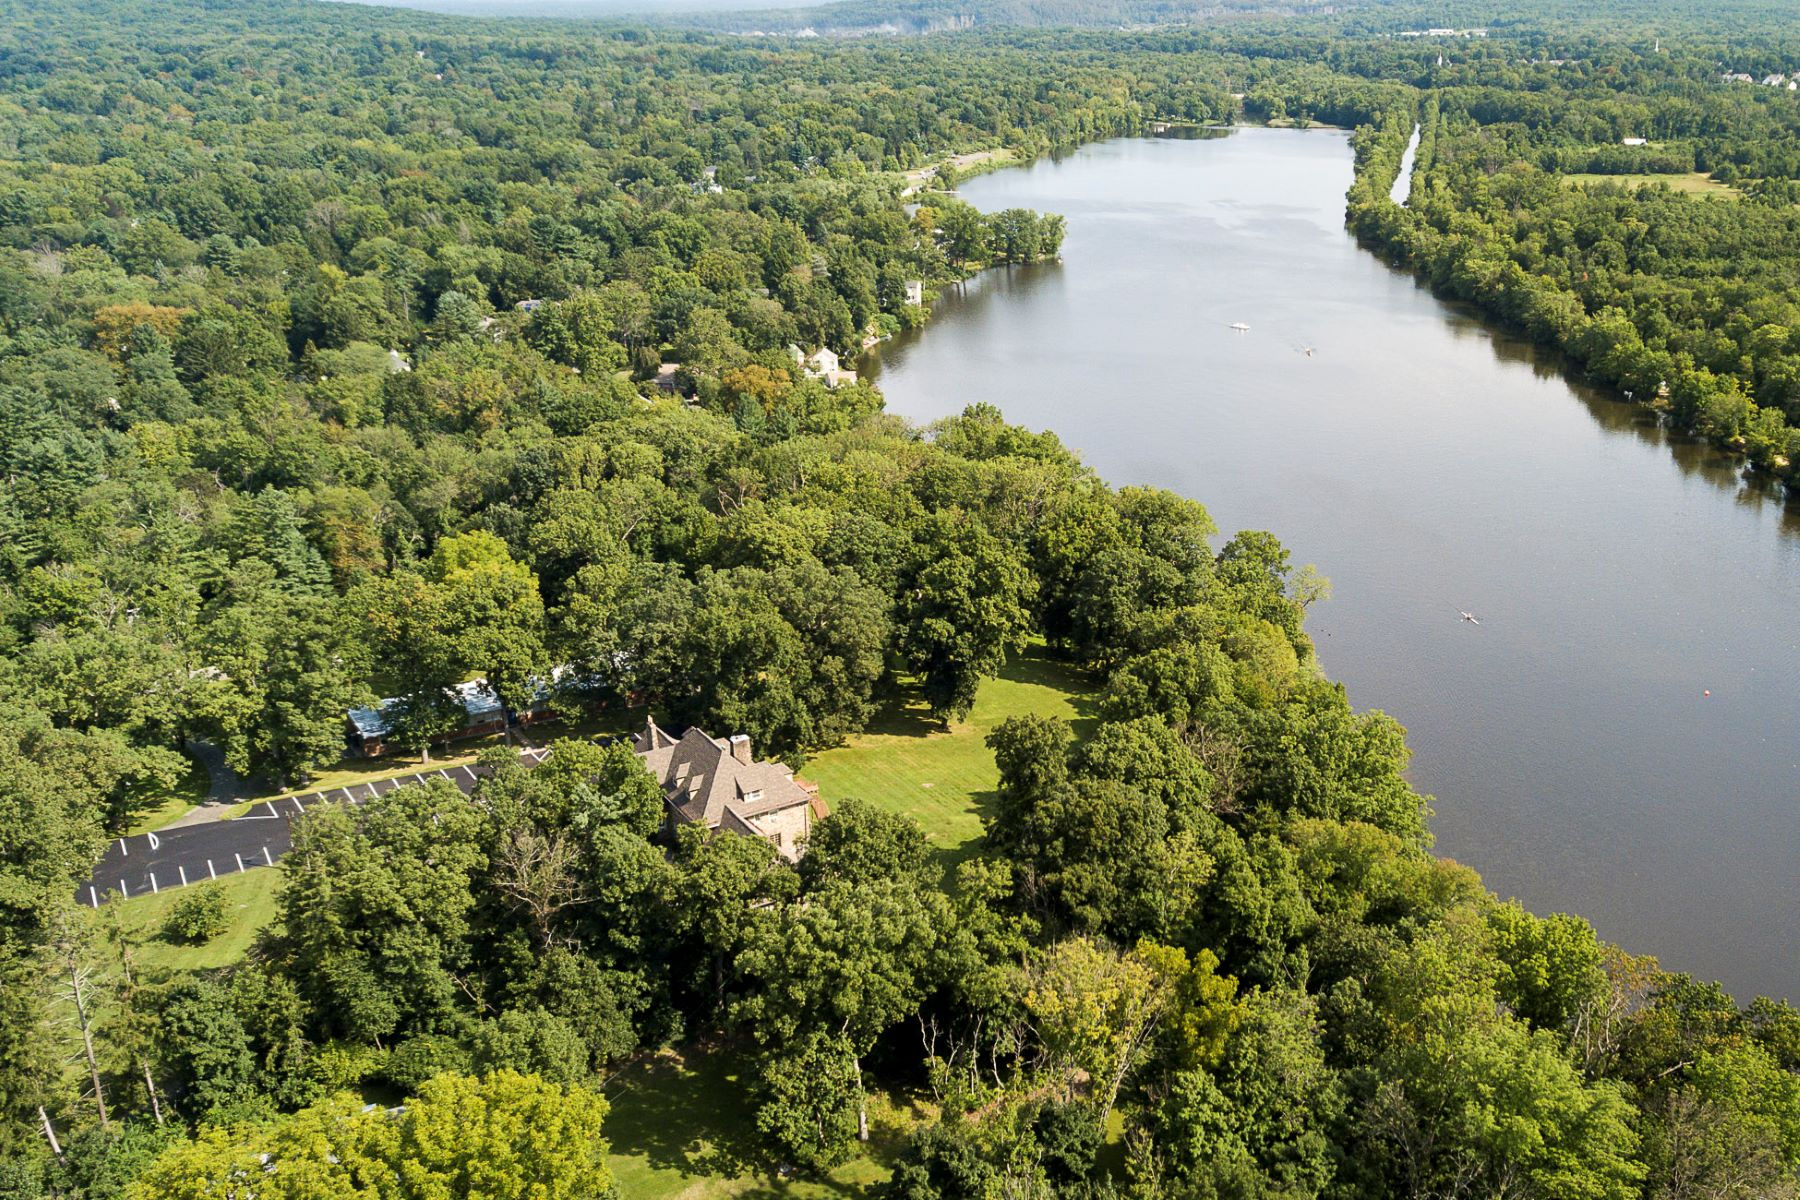 Property vì Bán tại Unprecedented Lake-Front Development Opportunity 601 Prospect Avenue, Princeton, New Jersey 08540 Hoa Kỳ